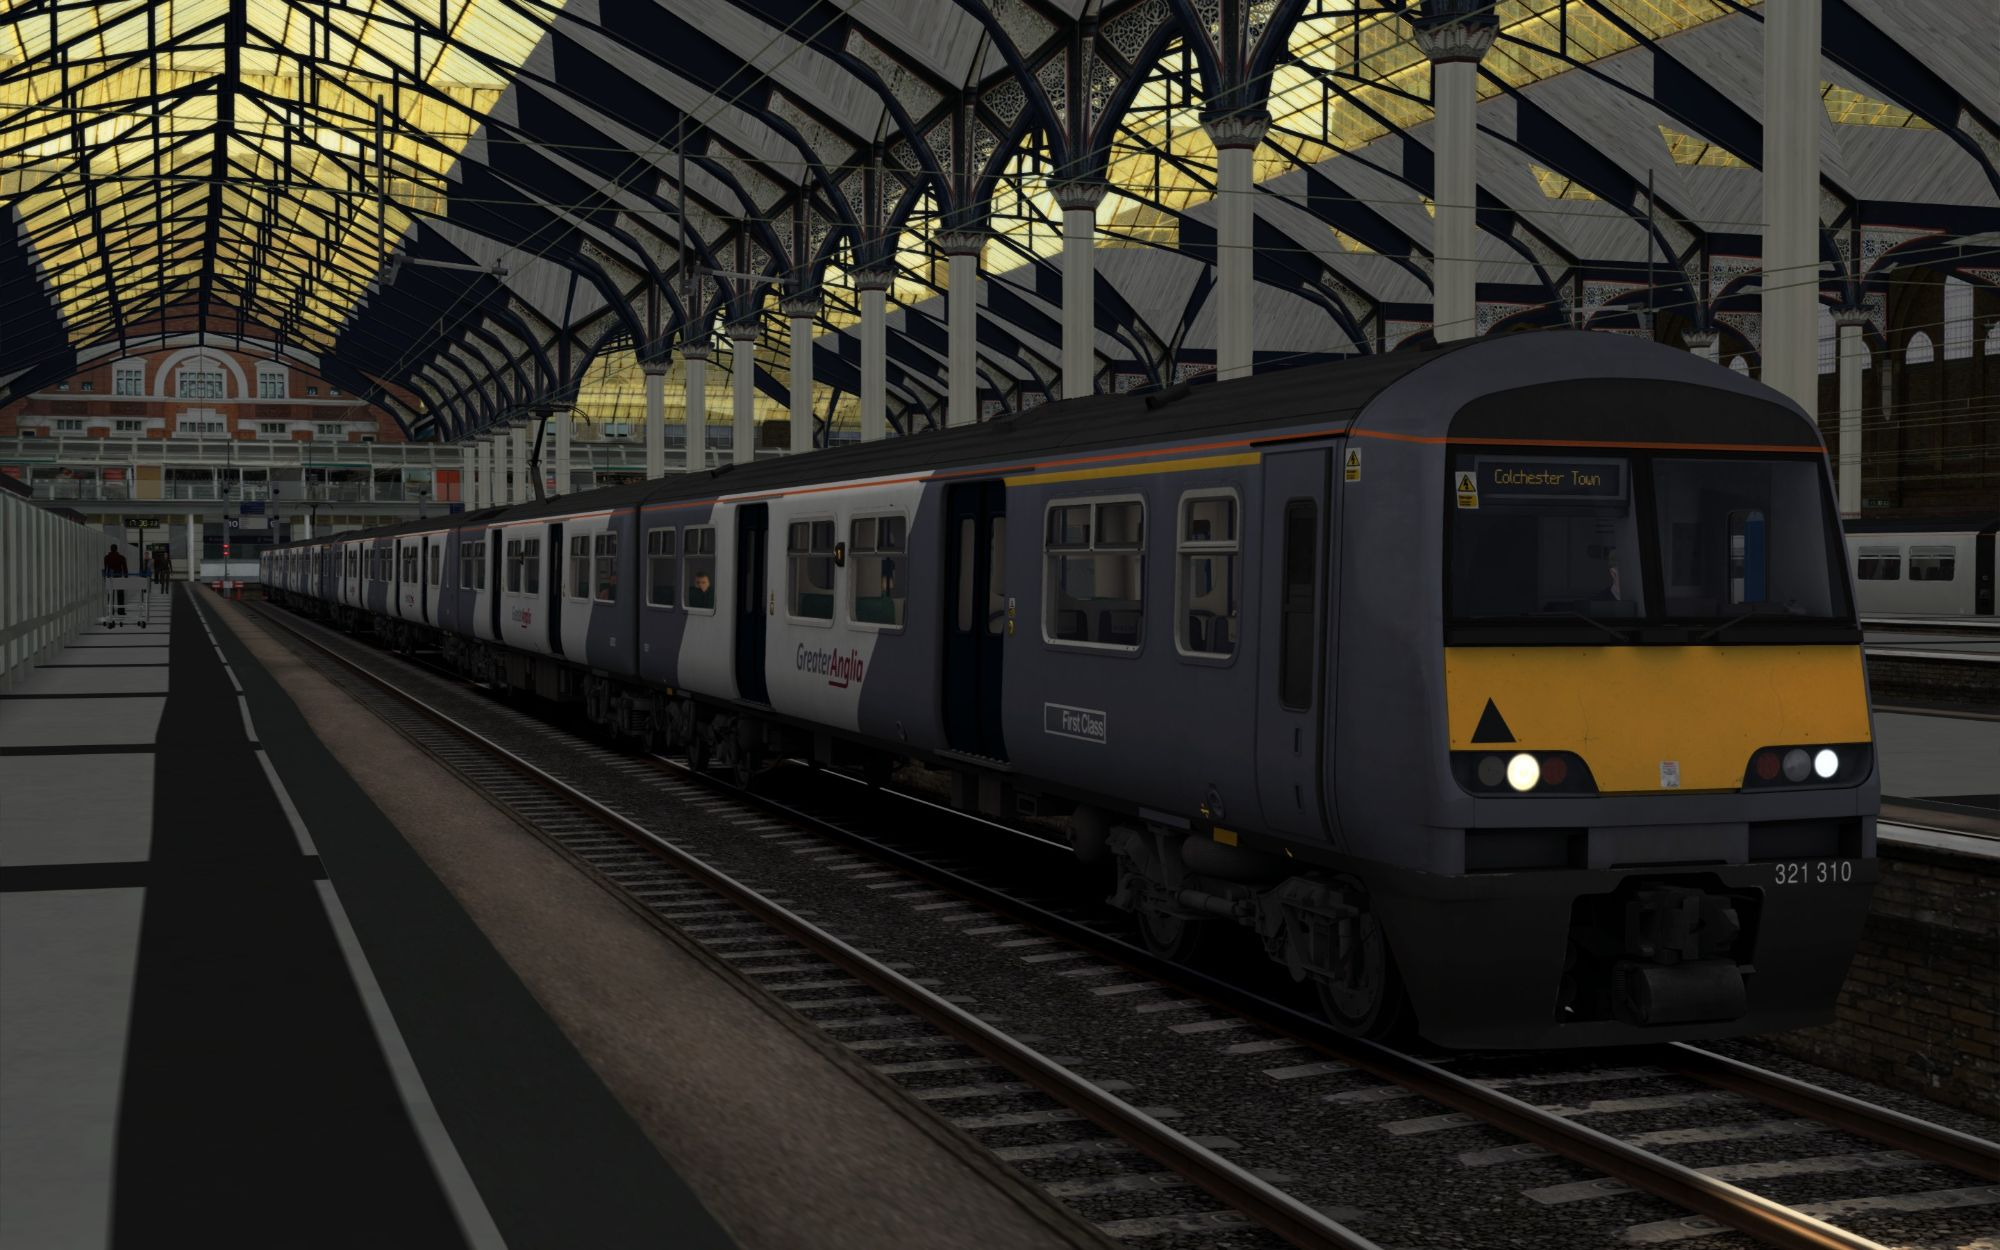 Image showing screenshot of the 1F46 - 1740 London Liverpool Street to Colchester Town scenario